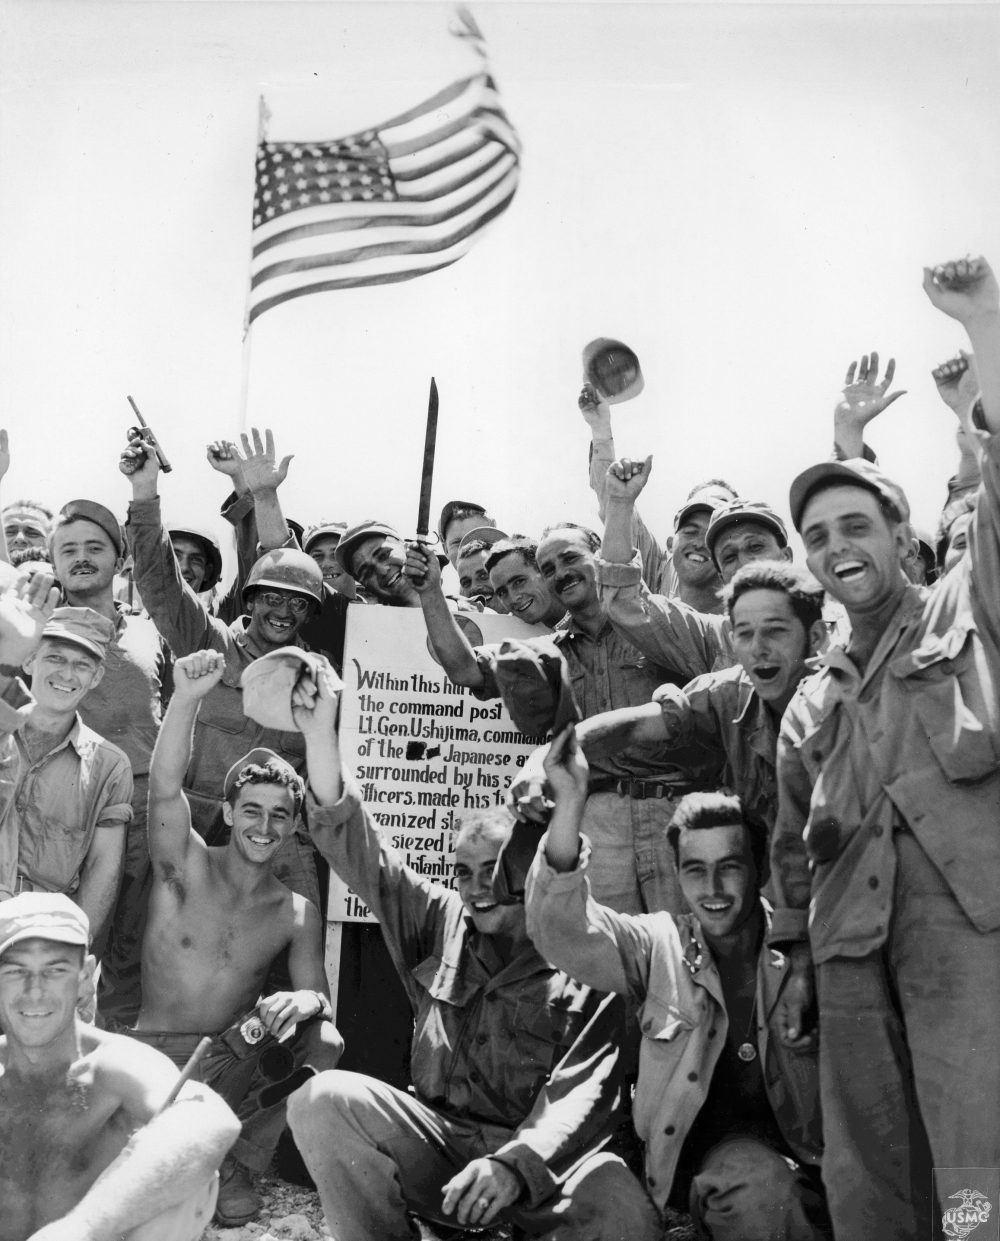 US Marines and US Army soldiers celebrating the capture of Hill 89, Okinawa, Japan, 27 Jun 1945; the hill was captured by US 7th Inf Div on 21 Jun 1945. (US Marine Corps photo)